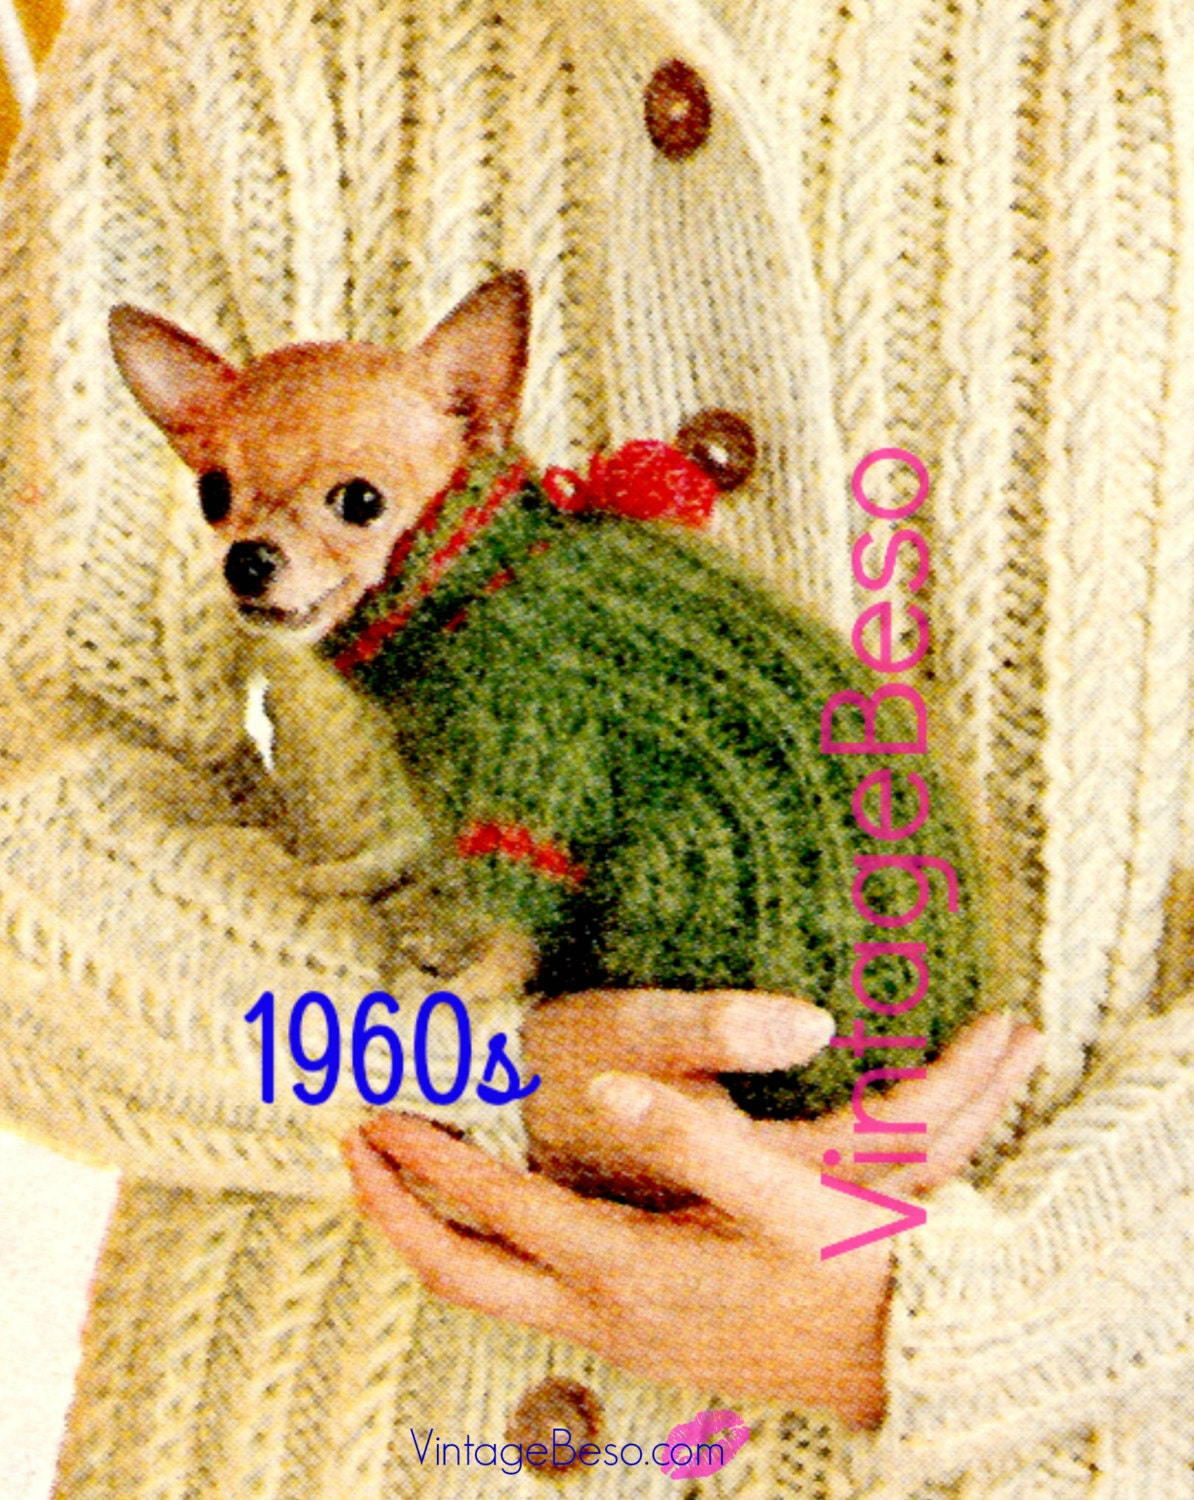 Vintage 1960s Chihuahua Dog Sweater Knitting Pattern • INSTANT ...